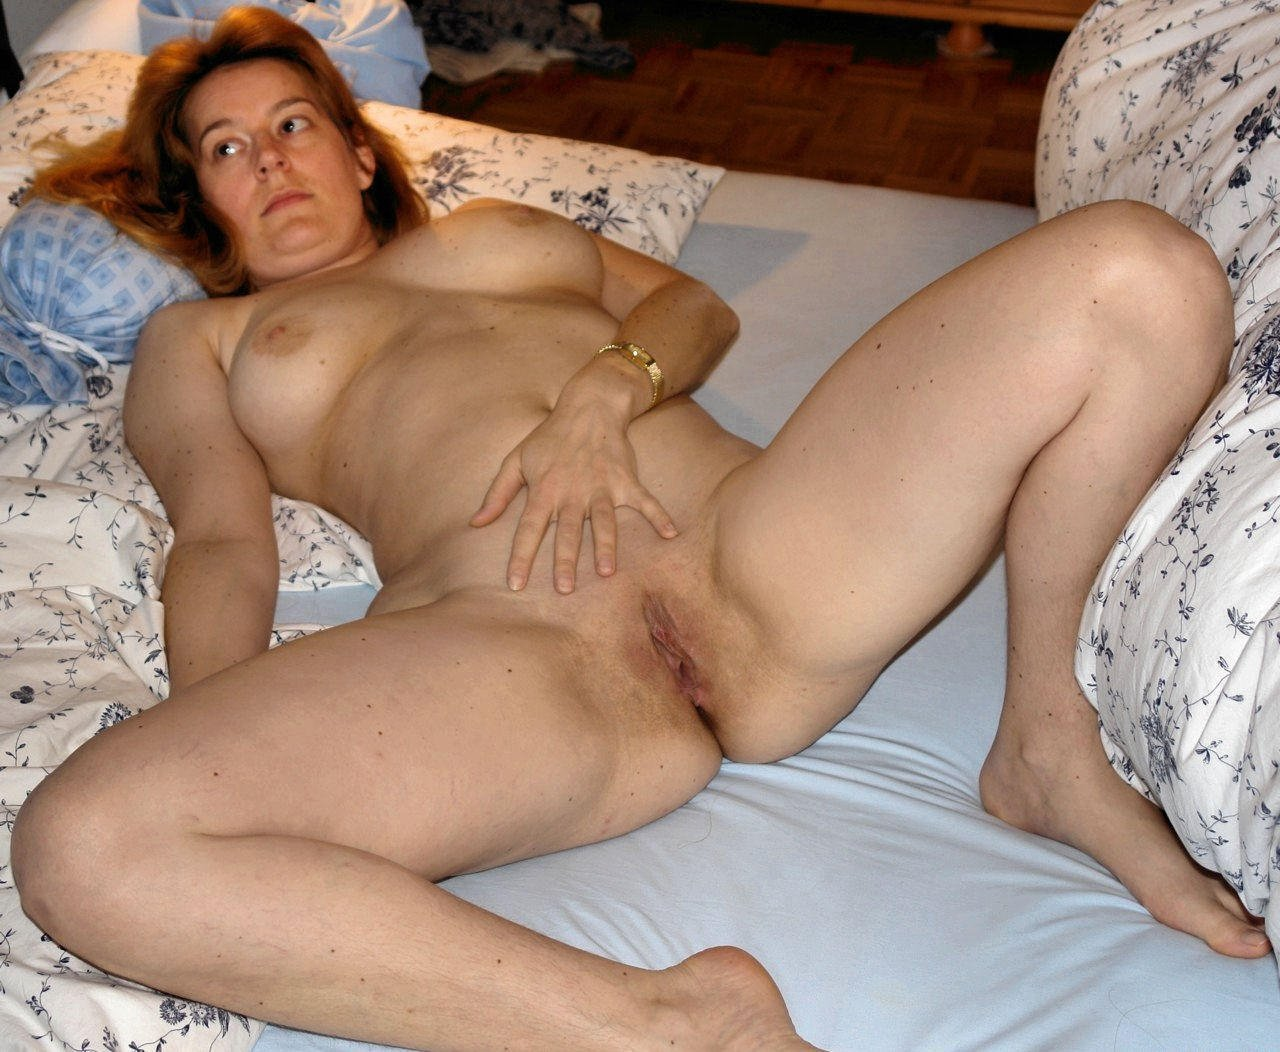 Women naked pictures adult of Women Reveal